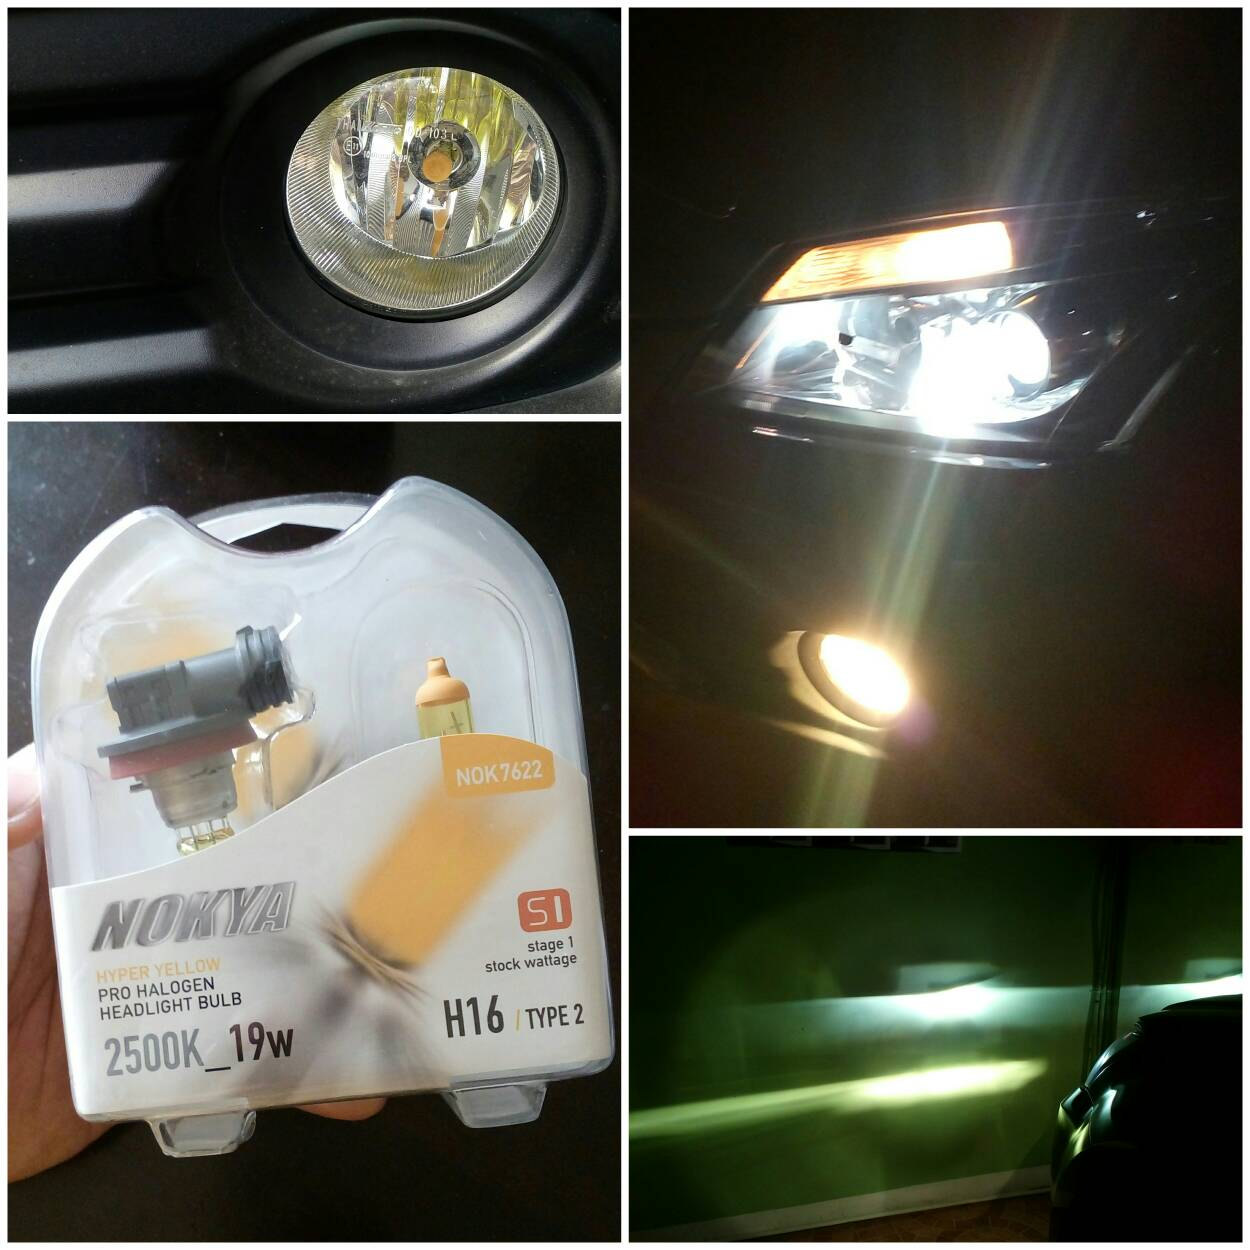 H11 And H16 Fog Lights Bulb Page 3